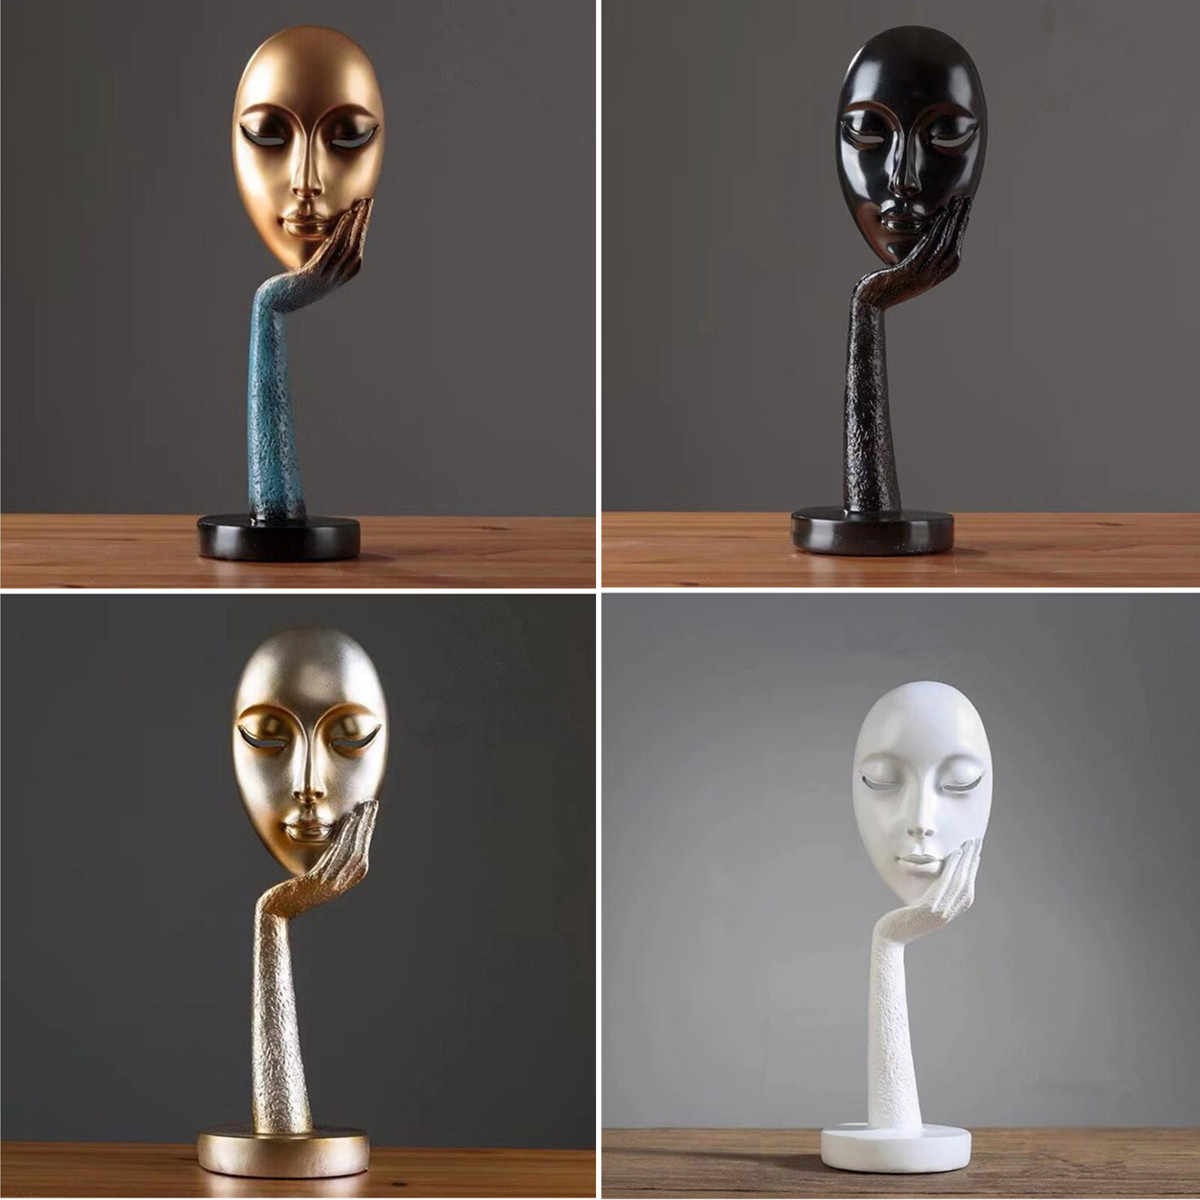 Abstract Statues Sculpture Art Crafts Modern Human Meditators Character Resin Figurine Lady Face Home Decorative